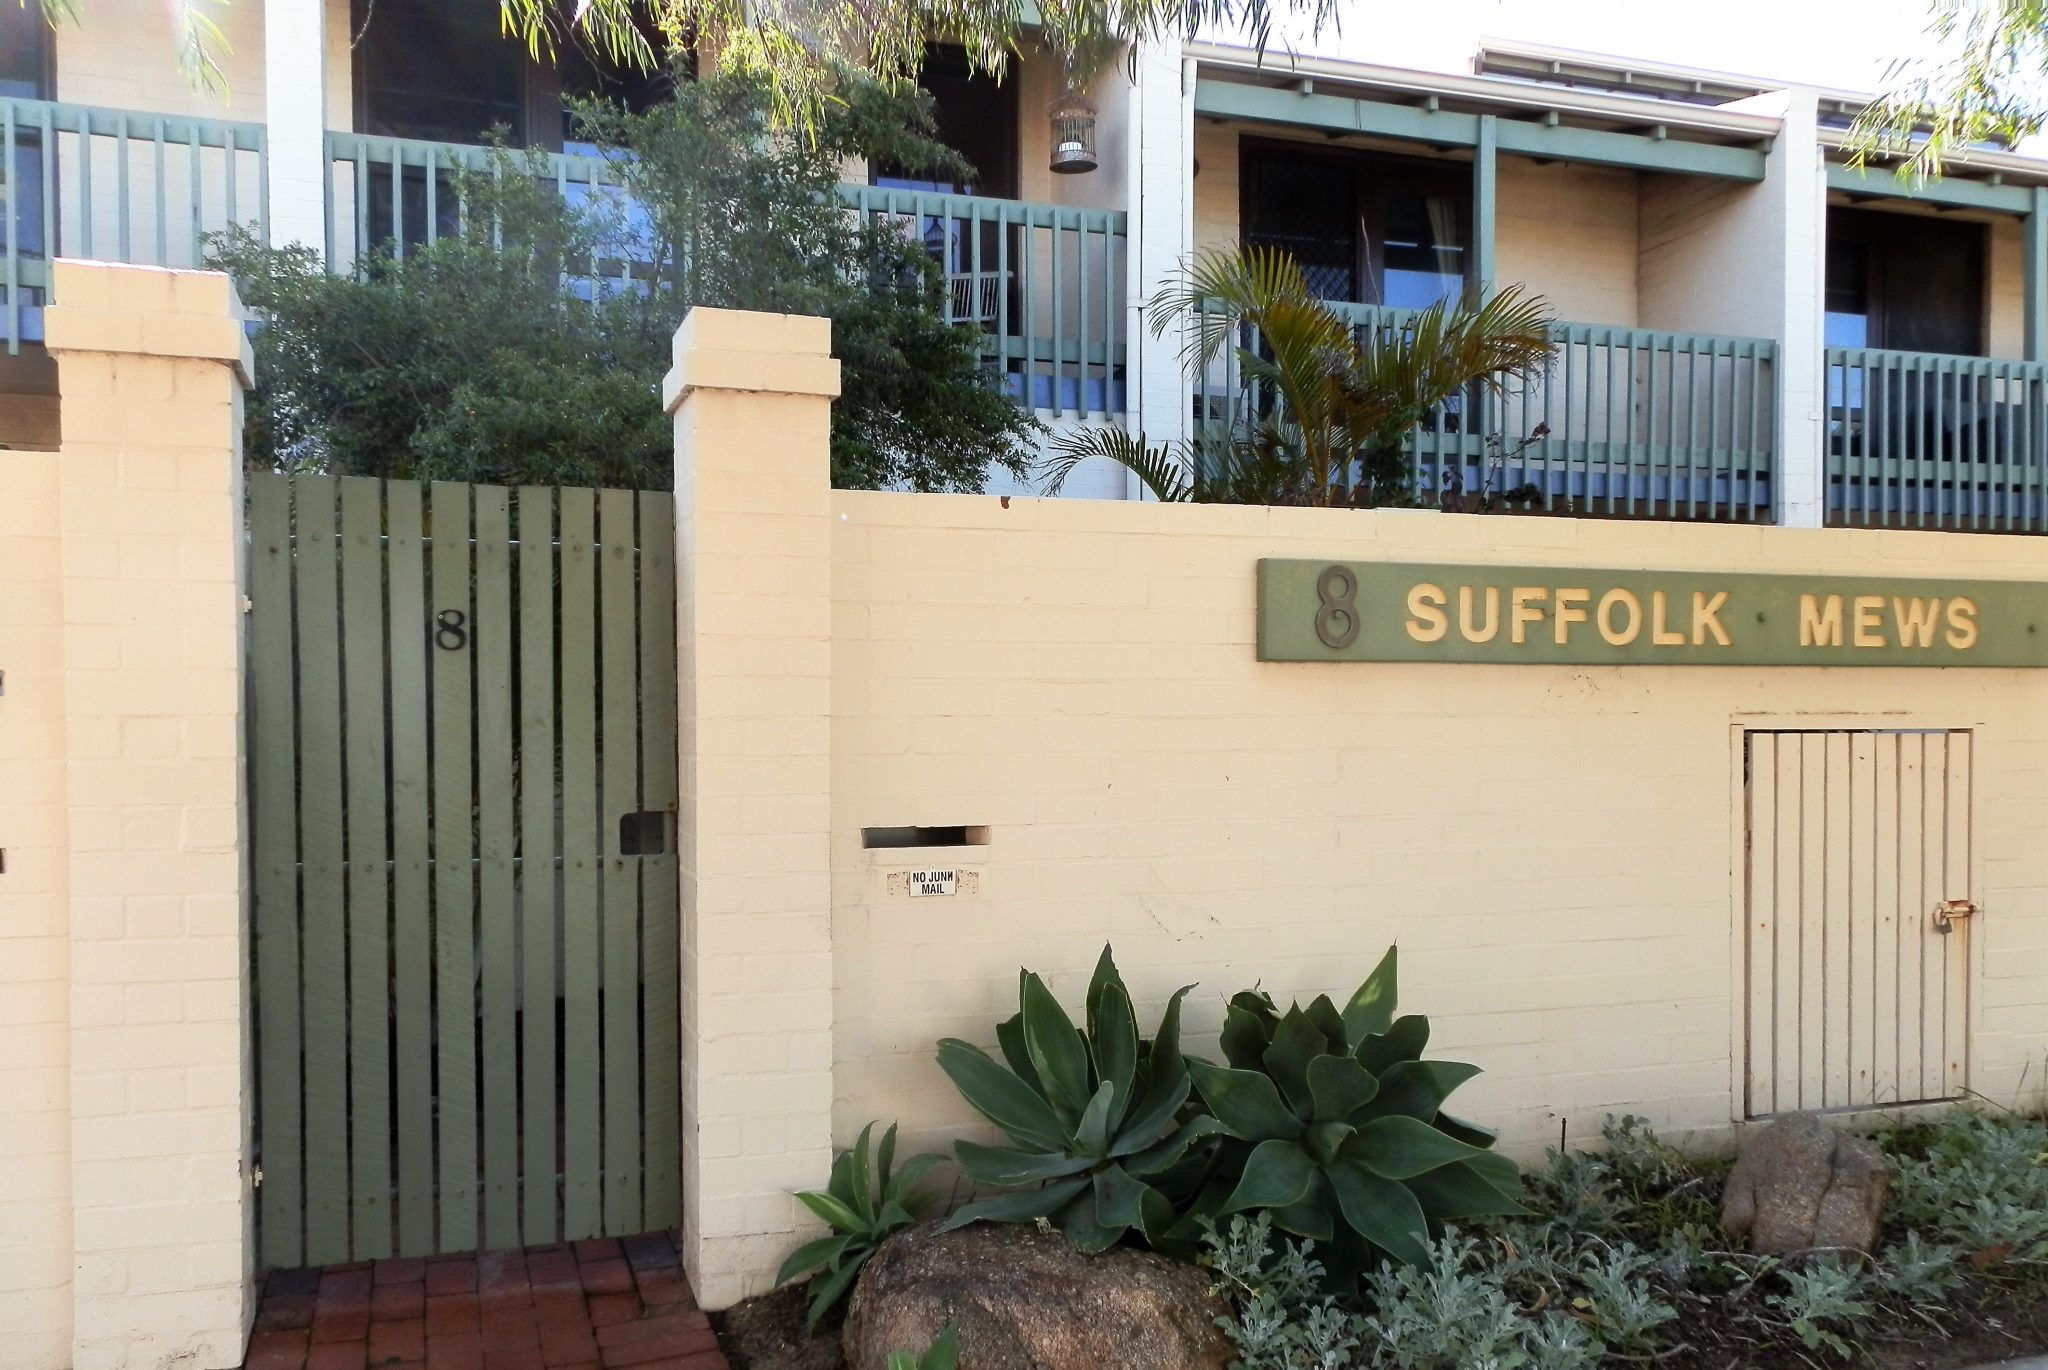 Suffolk street Villa Fremantle entry